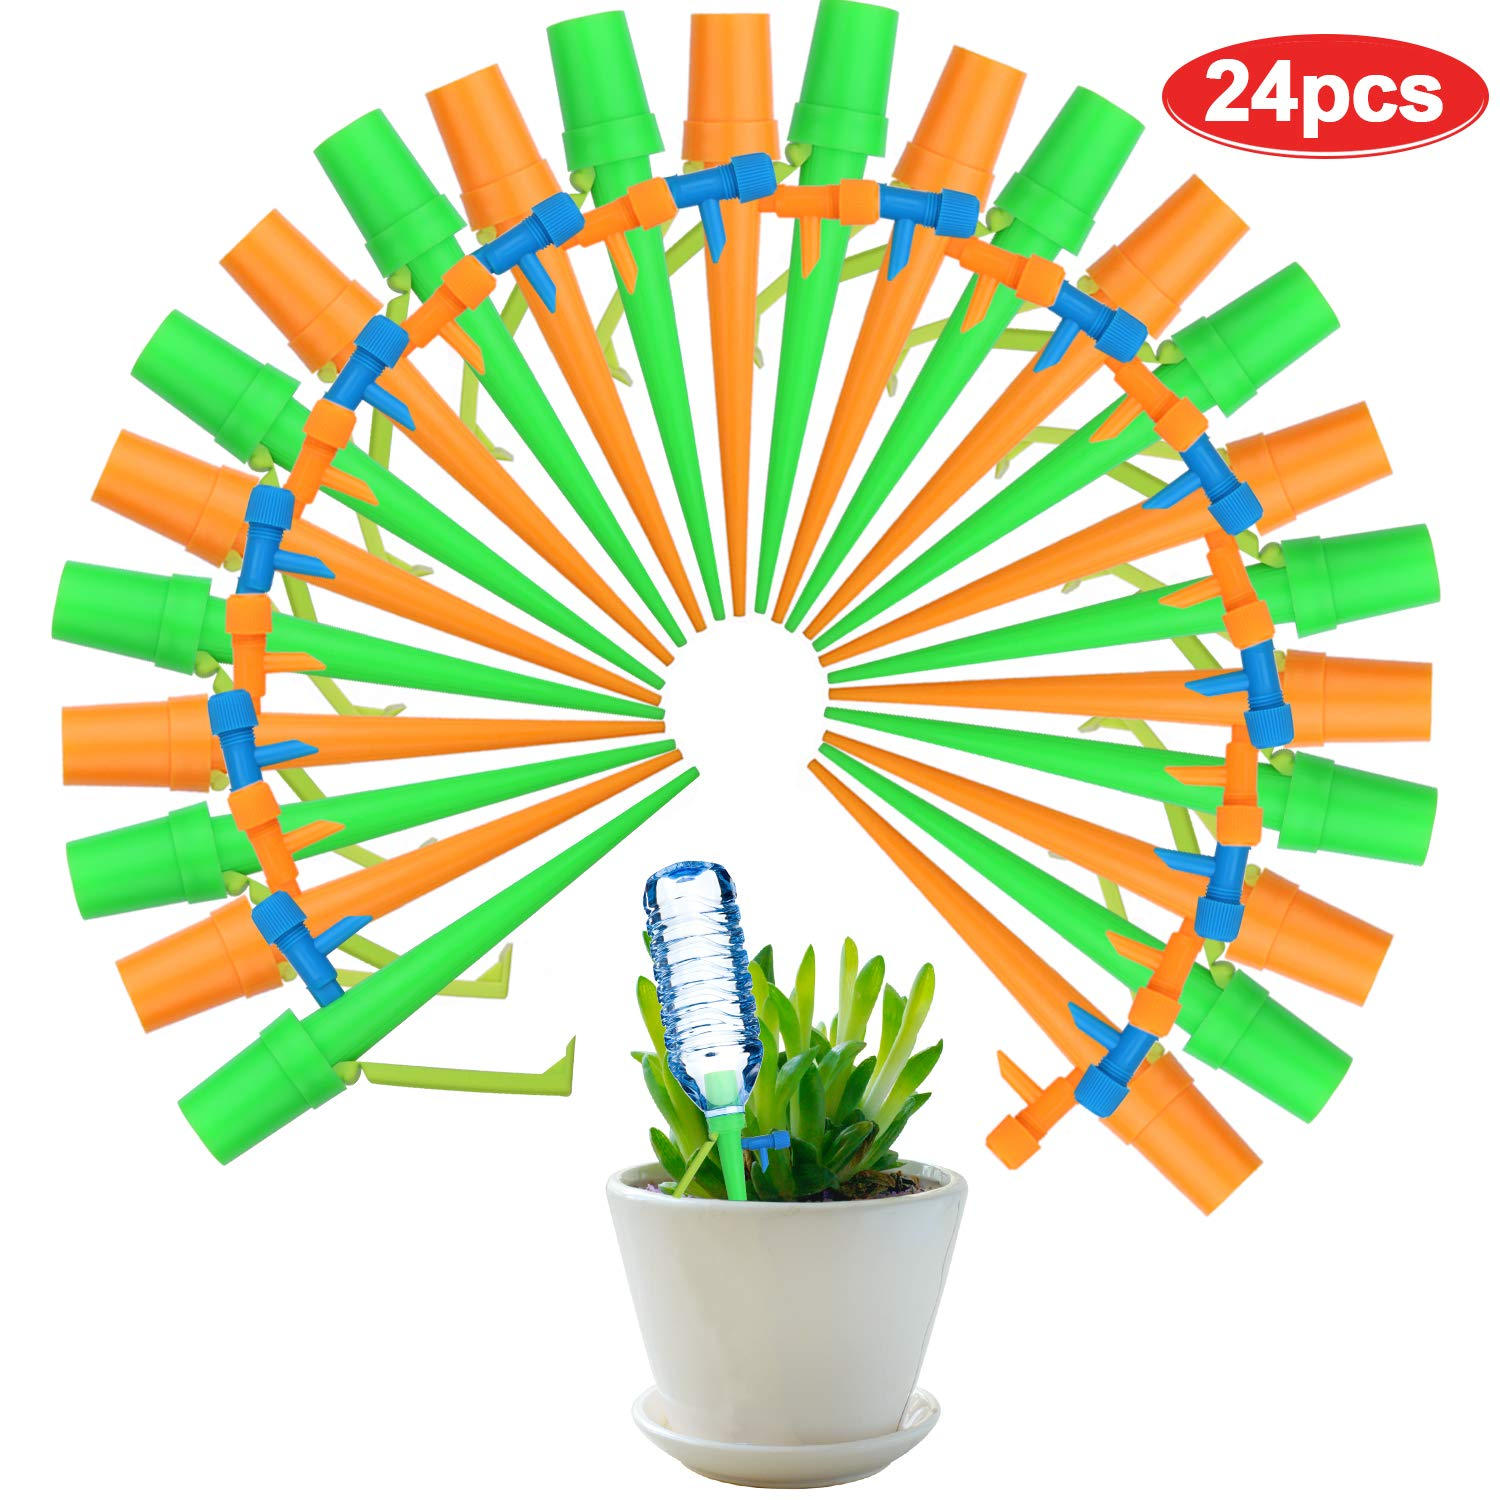 Flantor Plant Self Watering Spikes System, Vacation Automatic Plant Waterer Nannies Devices with Slow Release Control Valve Switch (24 PCS Watering Spikes) by Flantor